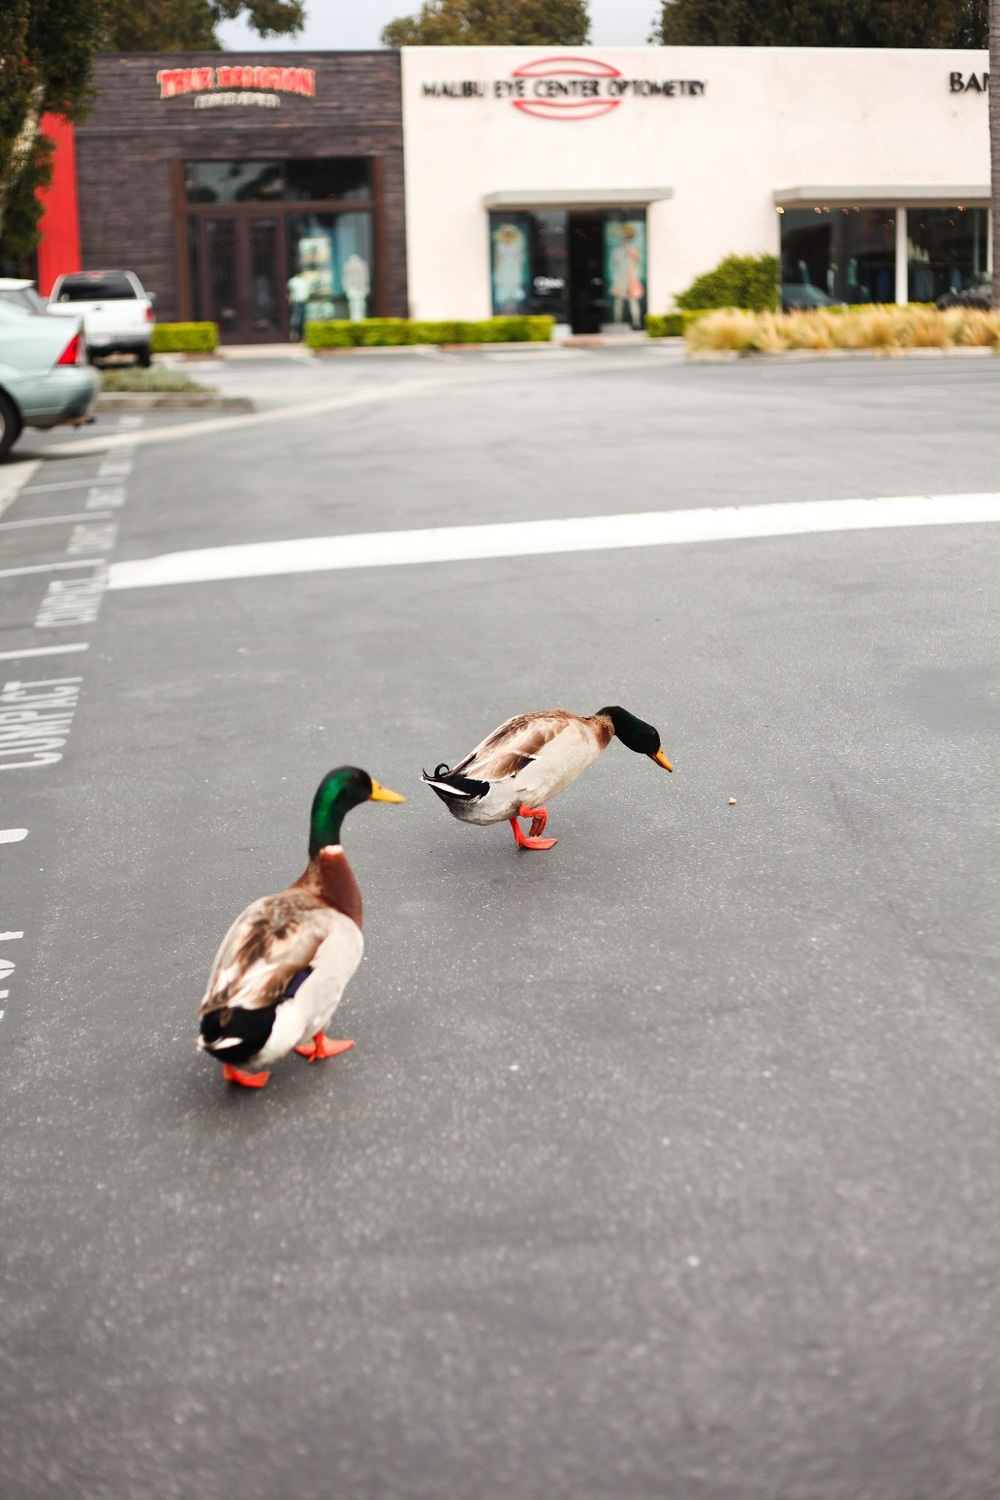 mallard+ducks+in+malibu.jpg